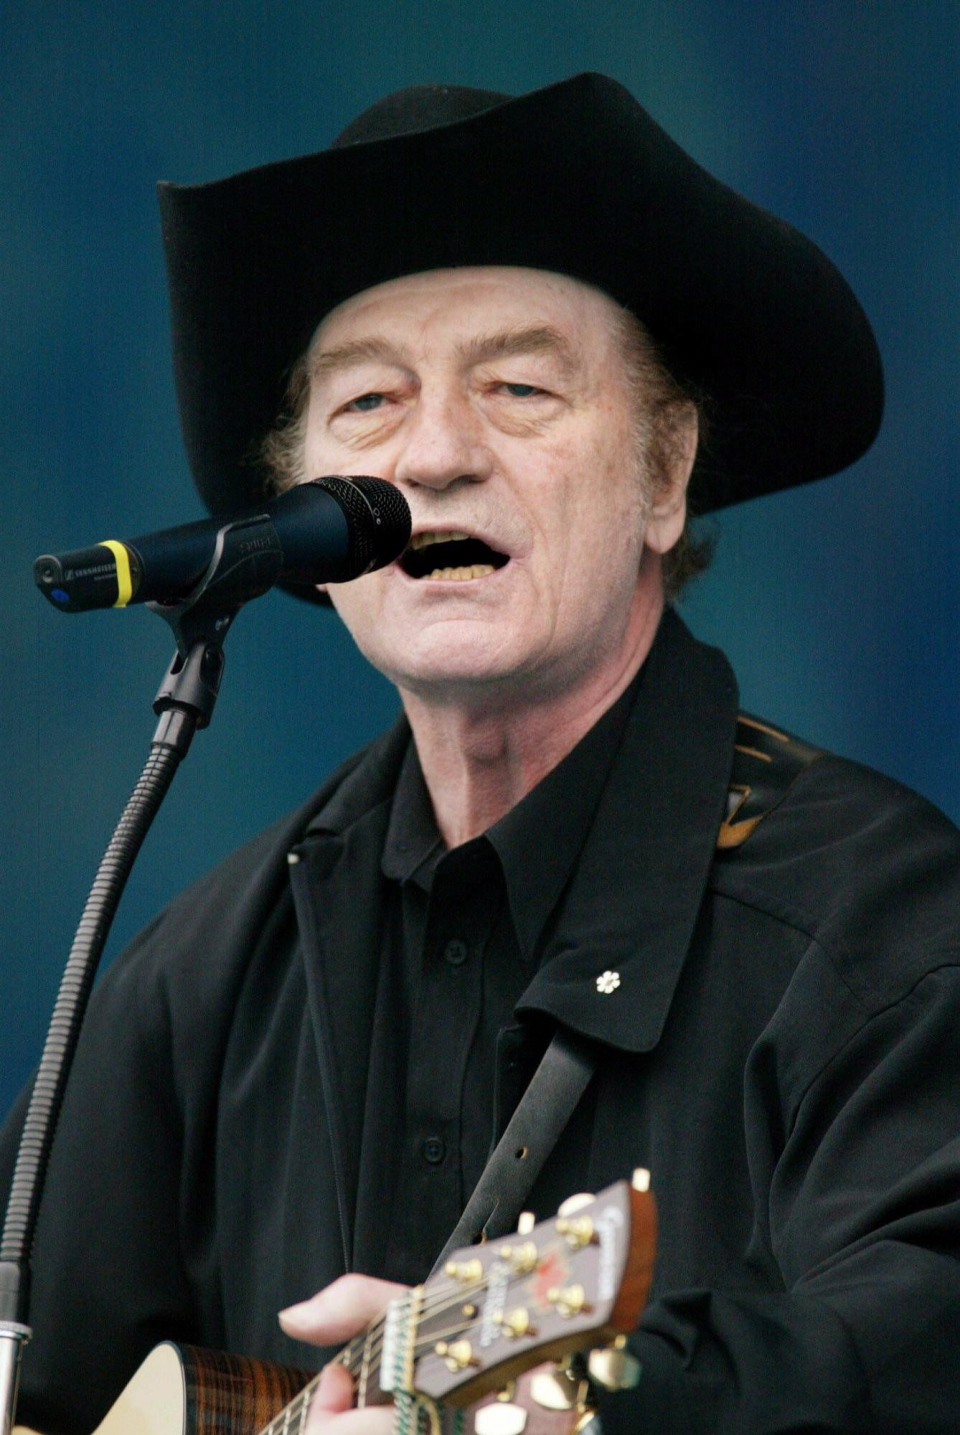 Stompin' Tom Connors performs at Live from Rideau Hall, a concert held at Rideau Hall in Ottawa Sunday, June 16, 2002 (Jonathan Hayward / THE CANADIAN PRESS)